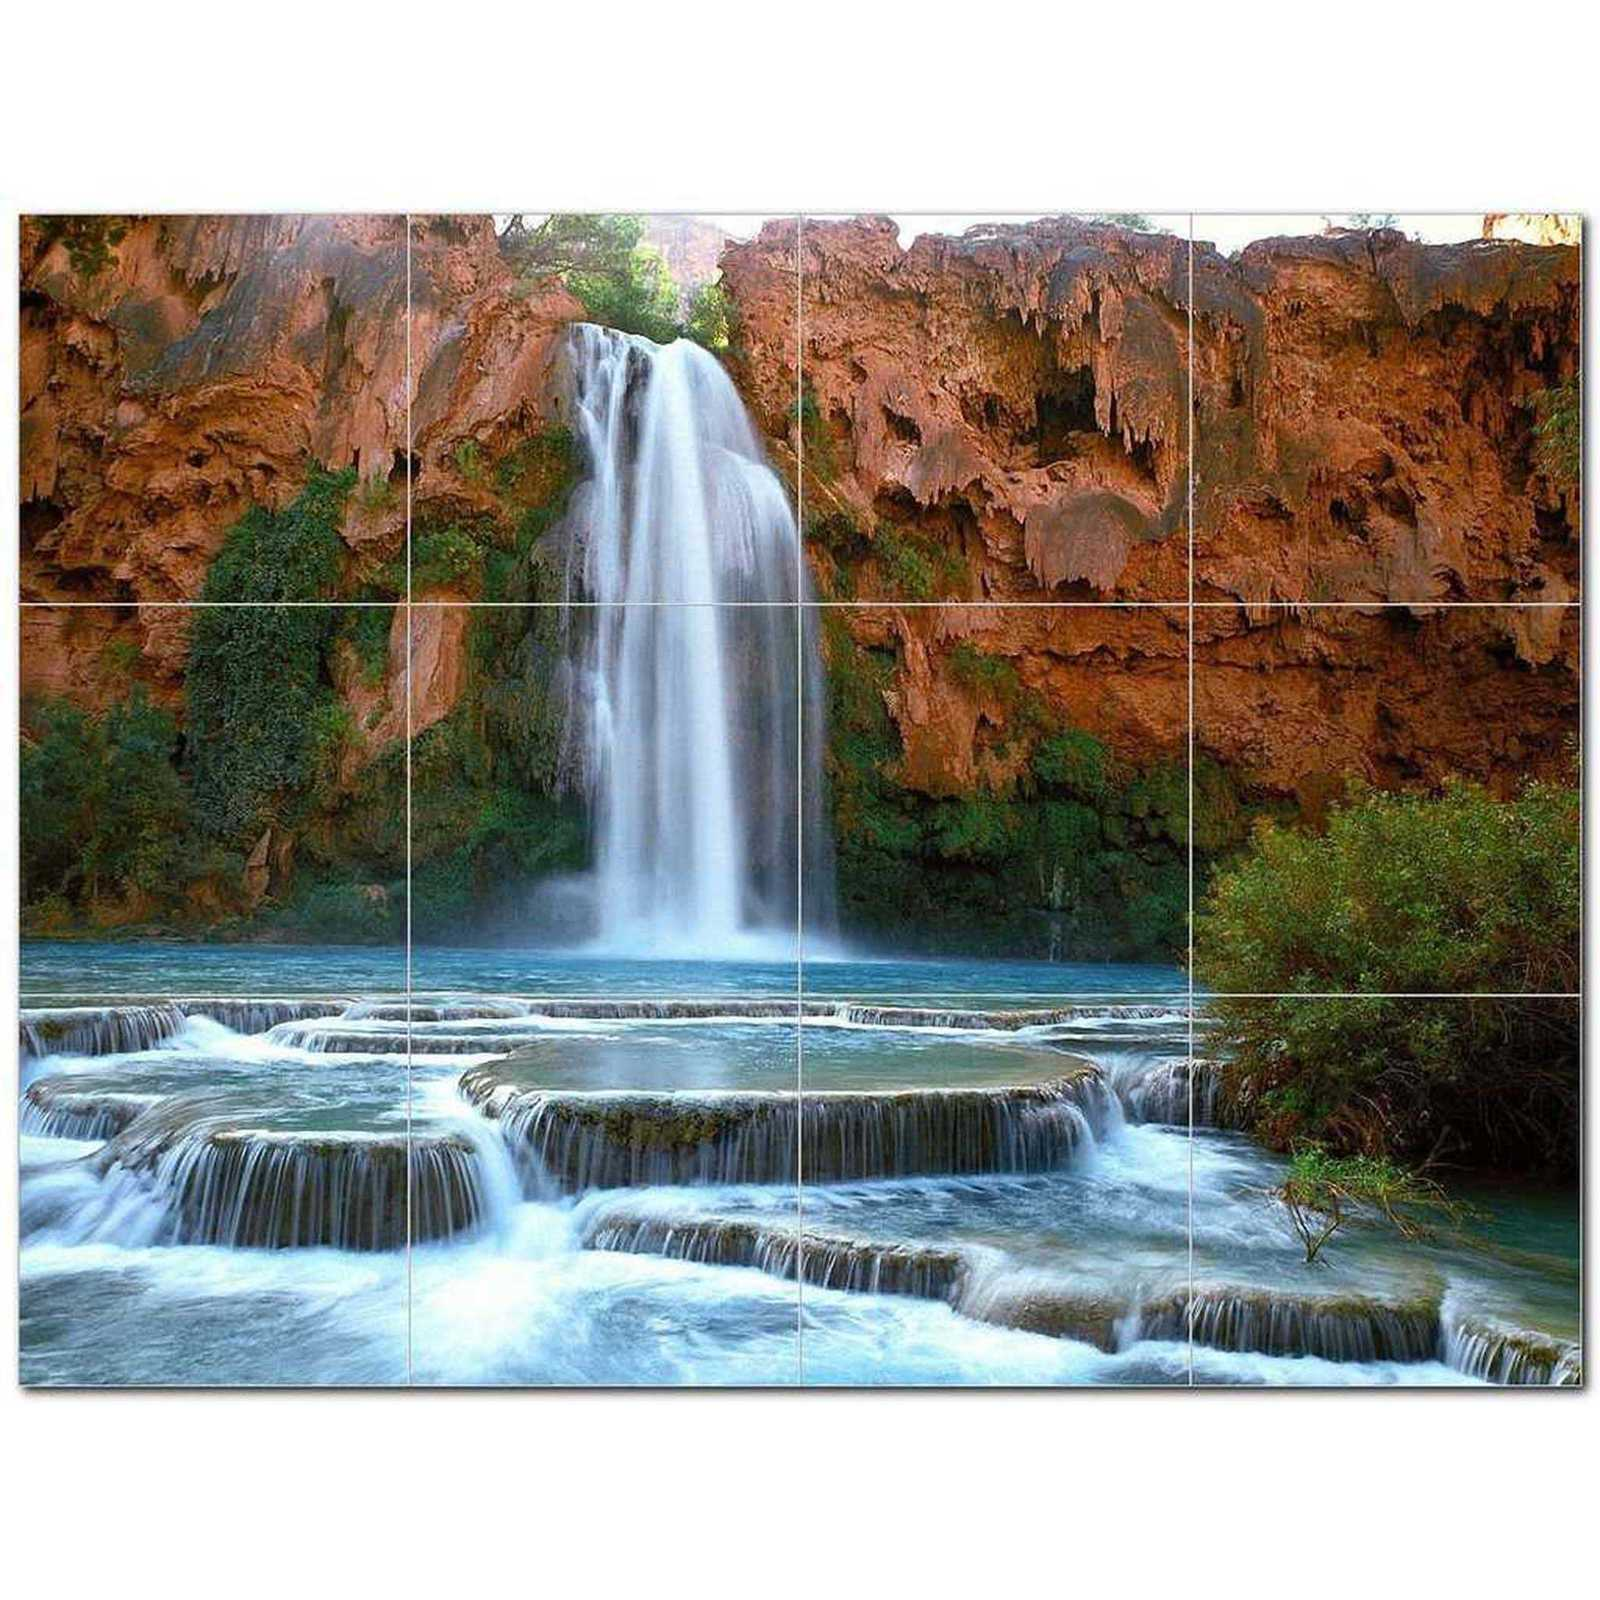 Primary image for Waterfall Picture Ceramic Tile Mural Kitchen Backsplash Bathroom Shower BAZ40616